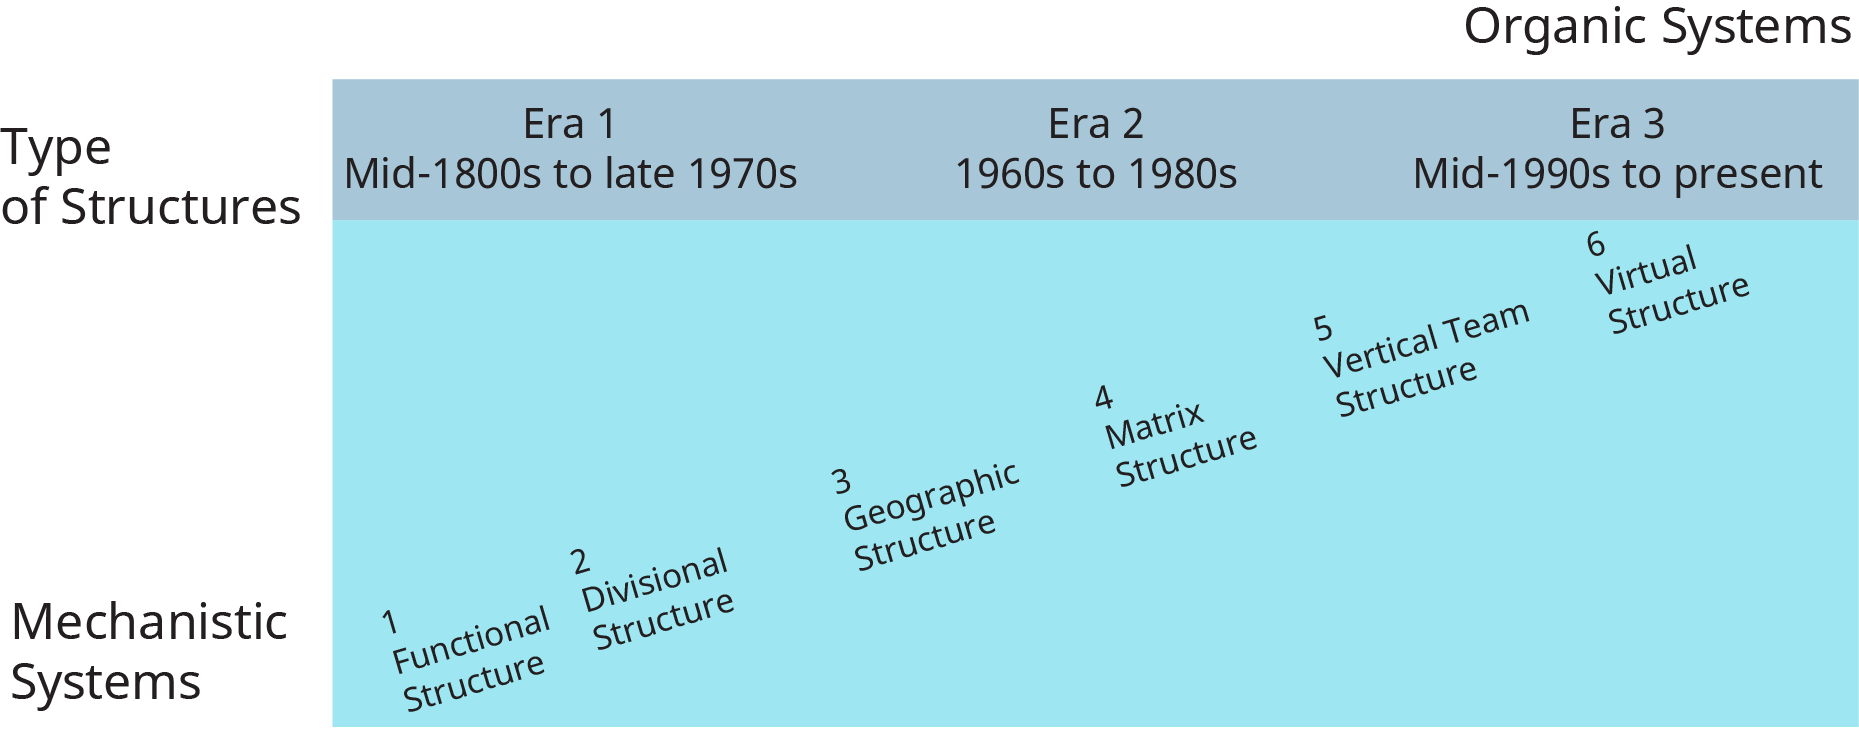 A diagram illustrates the different organizational structures that evolved over time.